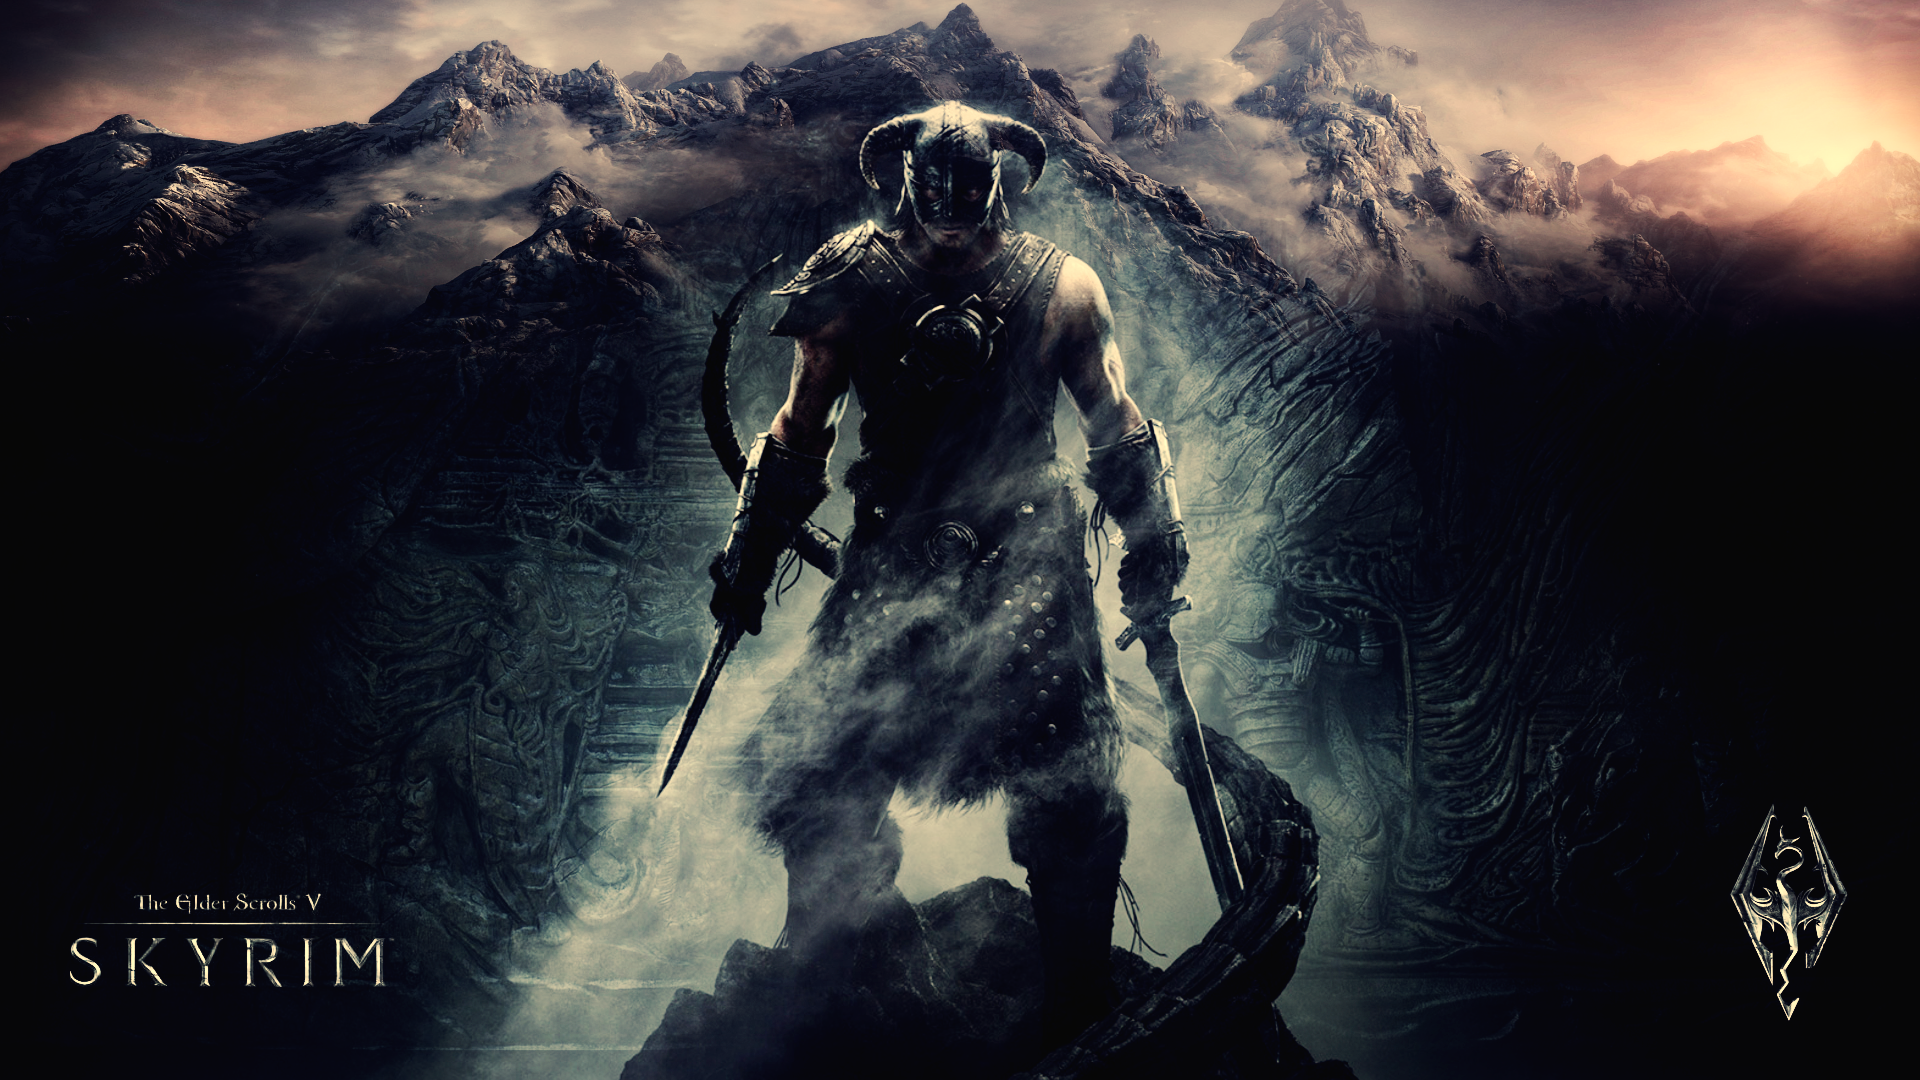 The Elder Scrolls V: Skyrim telecharger gratuit de PC et Torrent